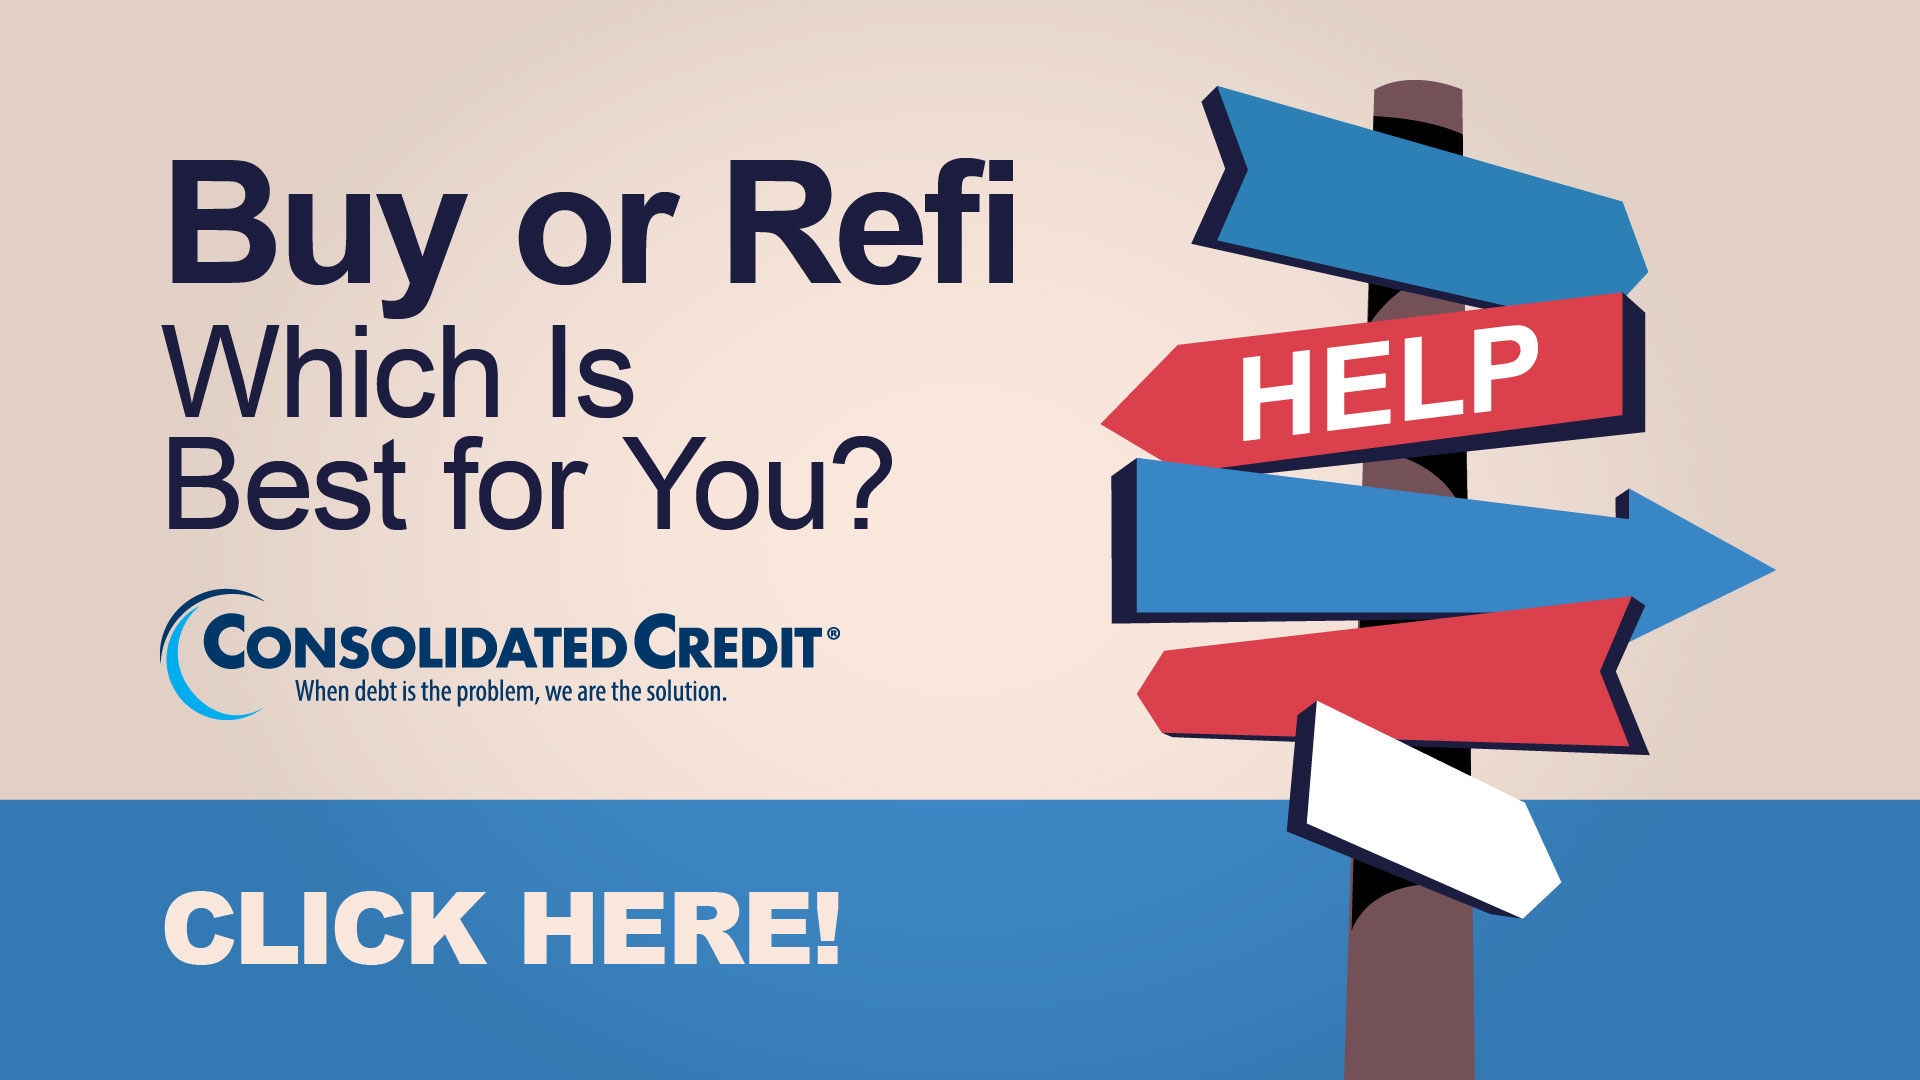 Buy or Refi: Which is Best for You? Click Here!